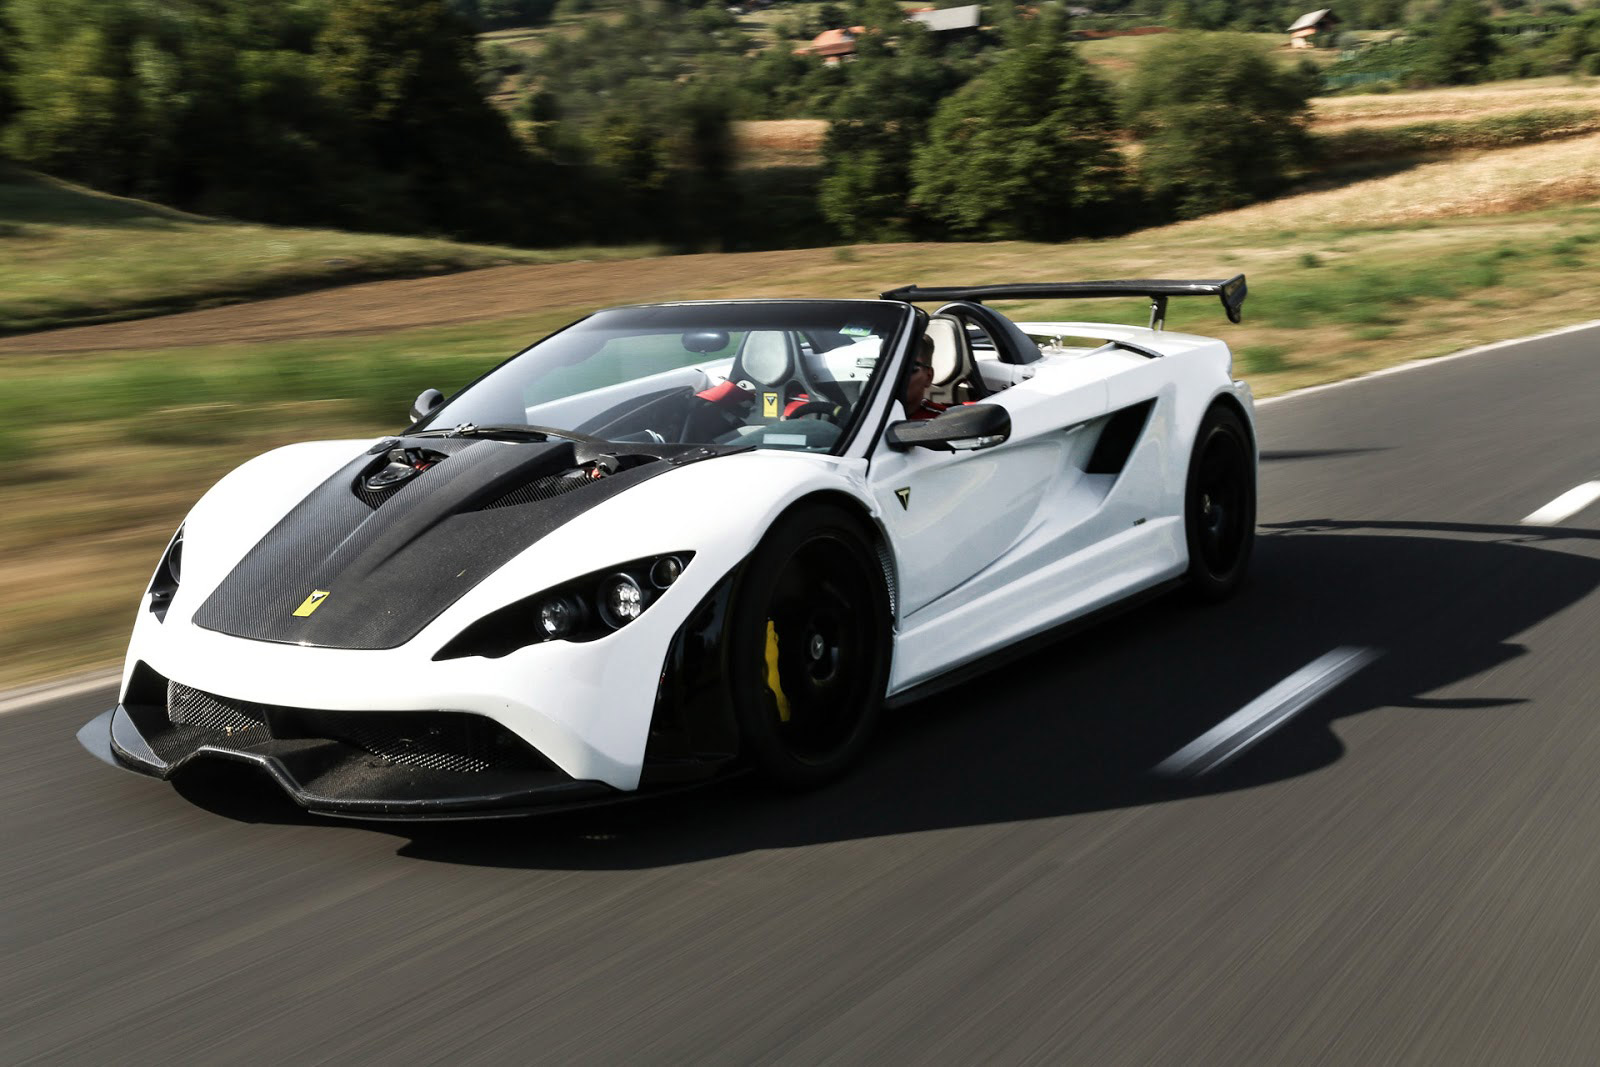 Tushek Renovatio T500 To Debut At Top Marques Monaco